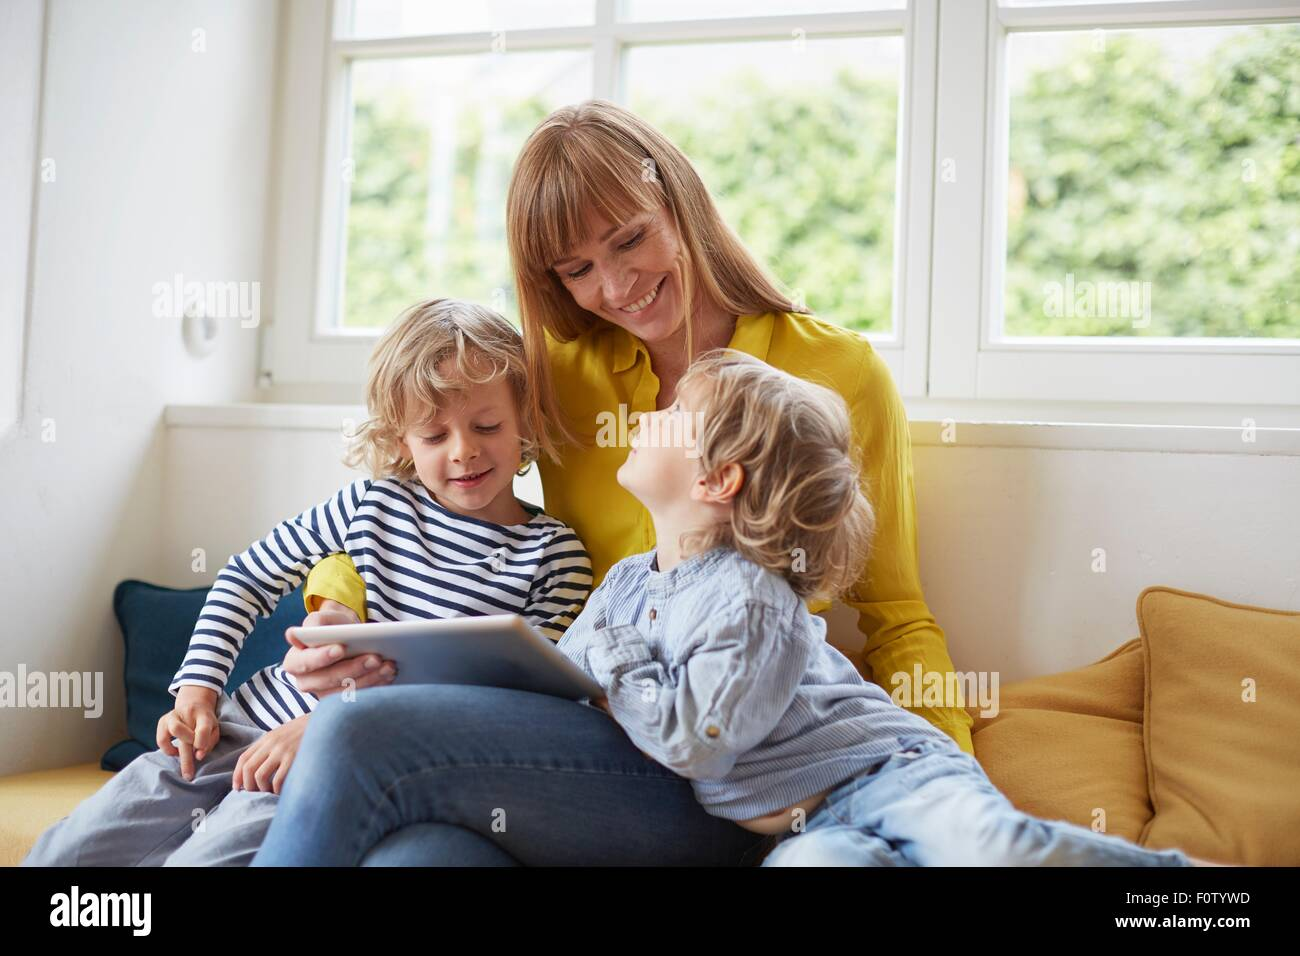 Mother and two sons, sitting in window seat, looking at digital tablet - Stock Image